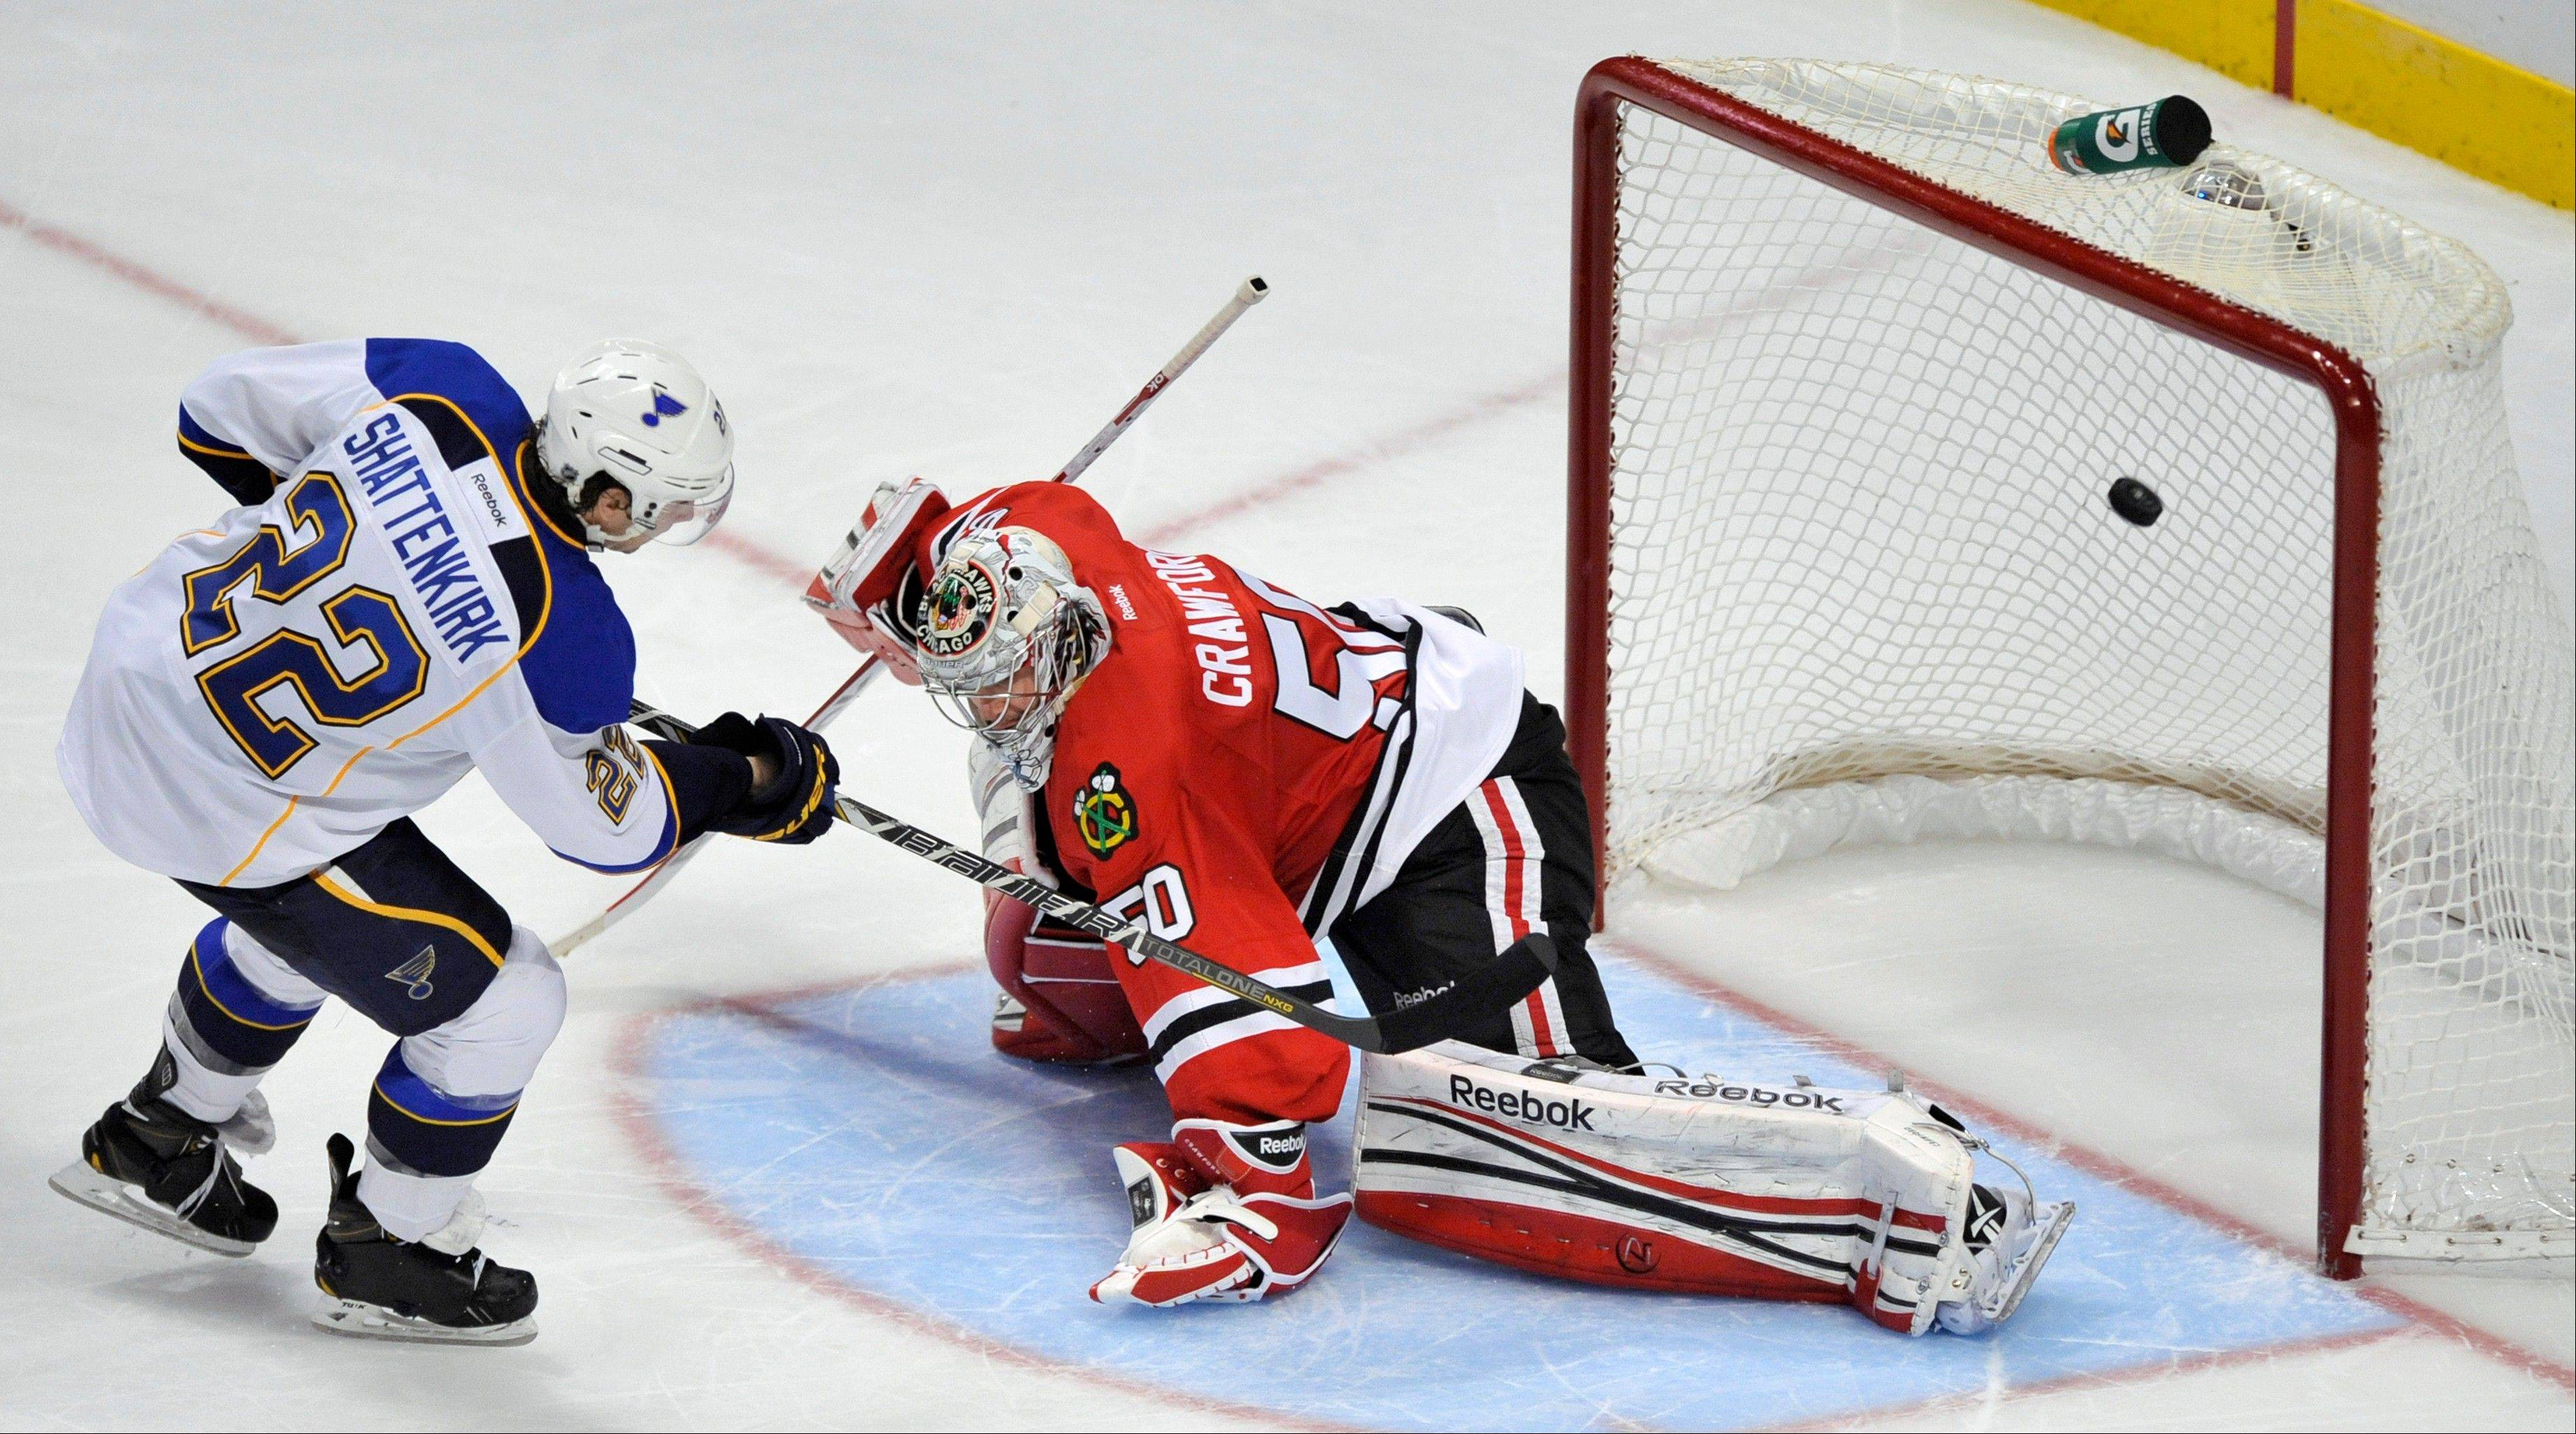 St. Louis� Kevin Shattenkirk scores against Corey Crawford during a shootout Thursday at the United Center.